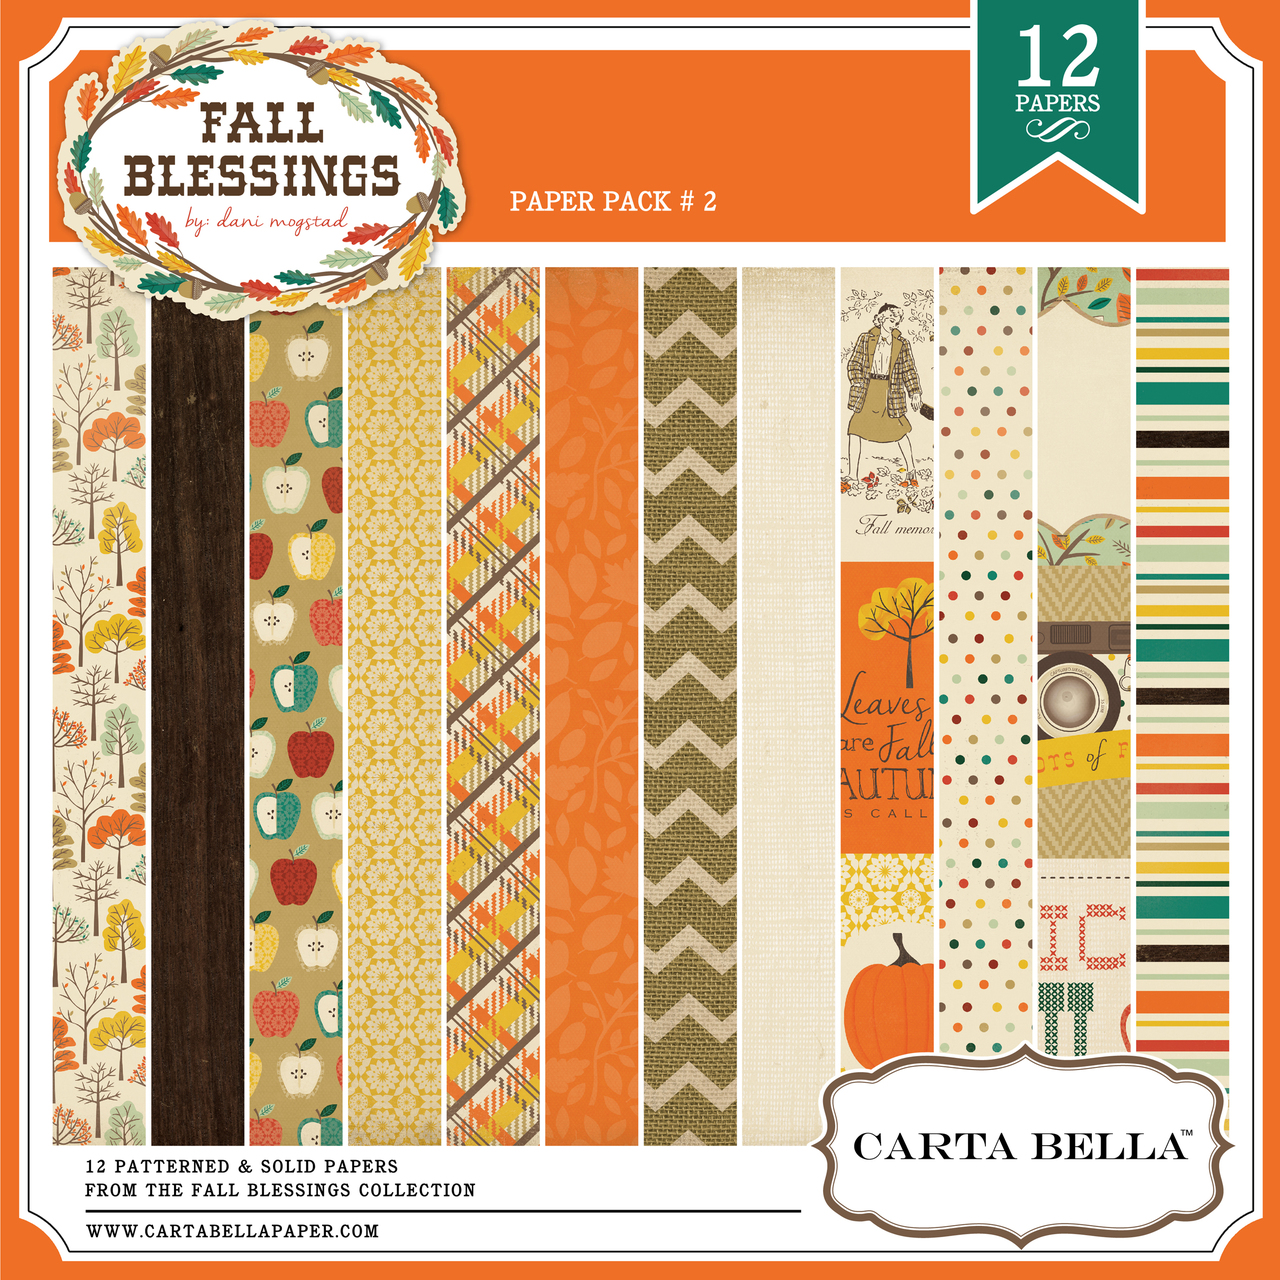 Fall Blessings Paper Pack 2